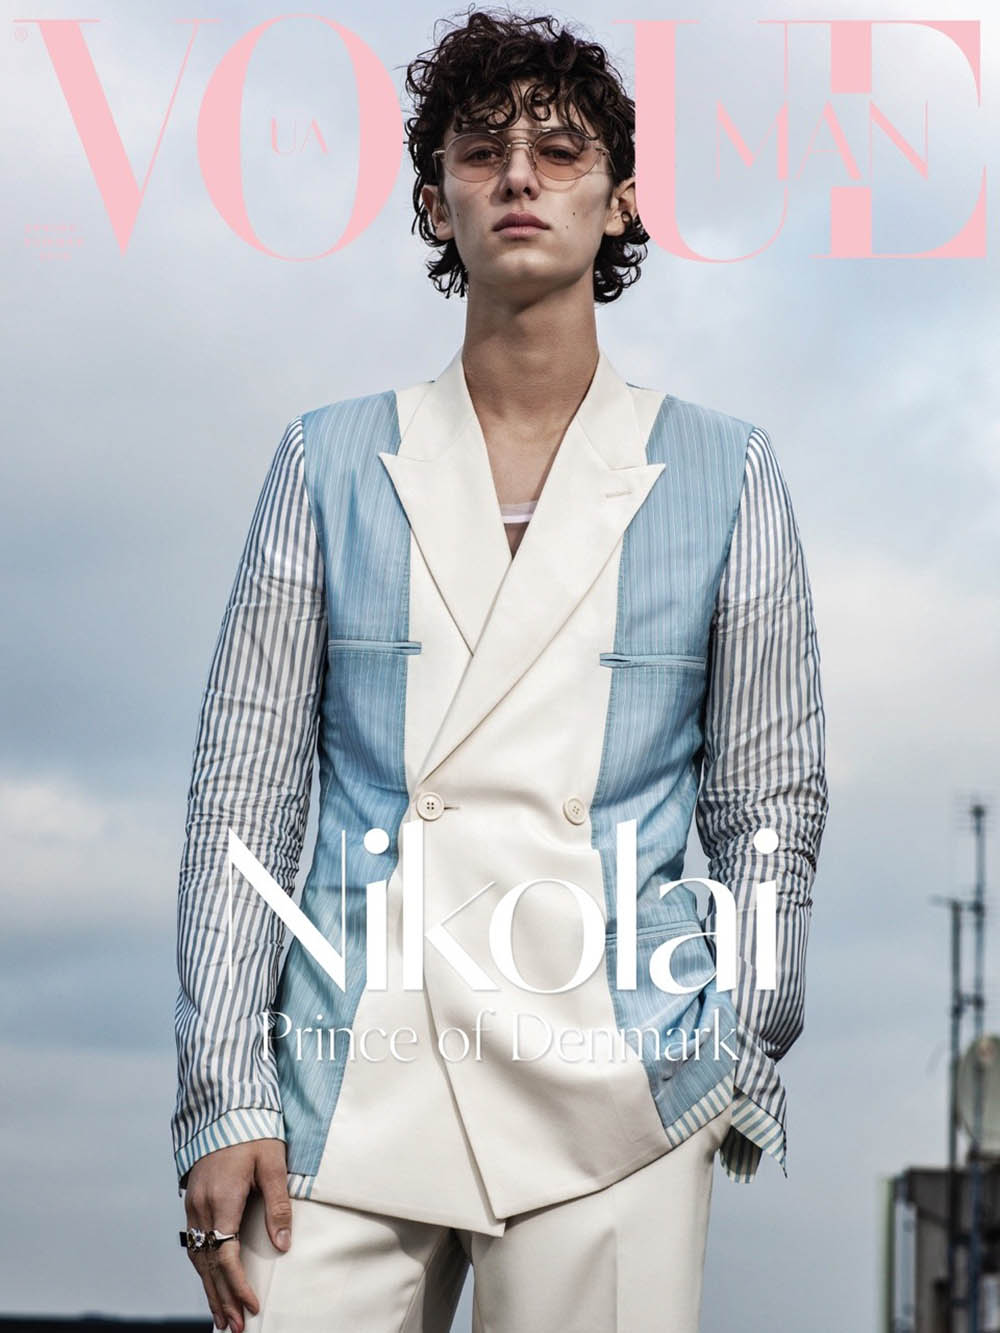 Prince Nikolai of Denmark covers Vogue Ukraine Man Spring Summer 2019 by Marco van Rijt